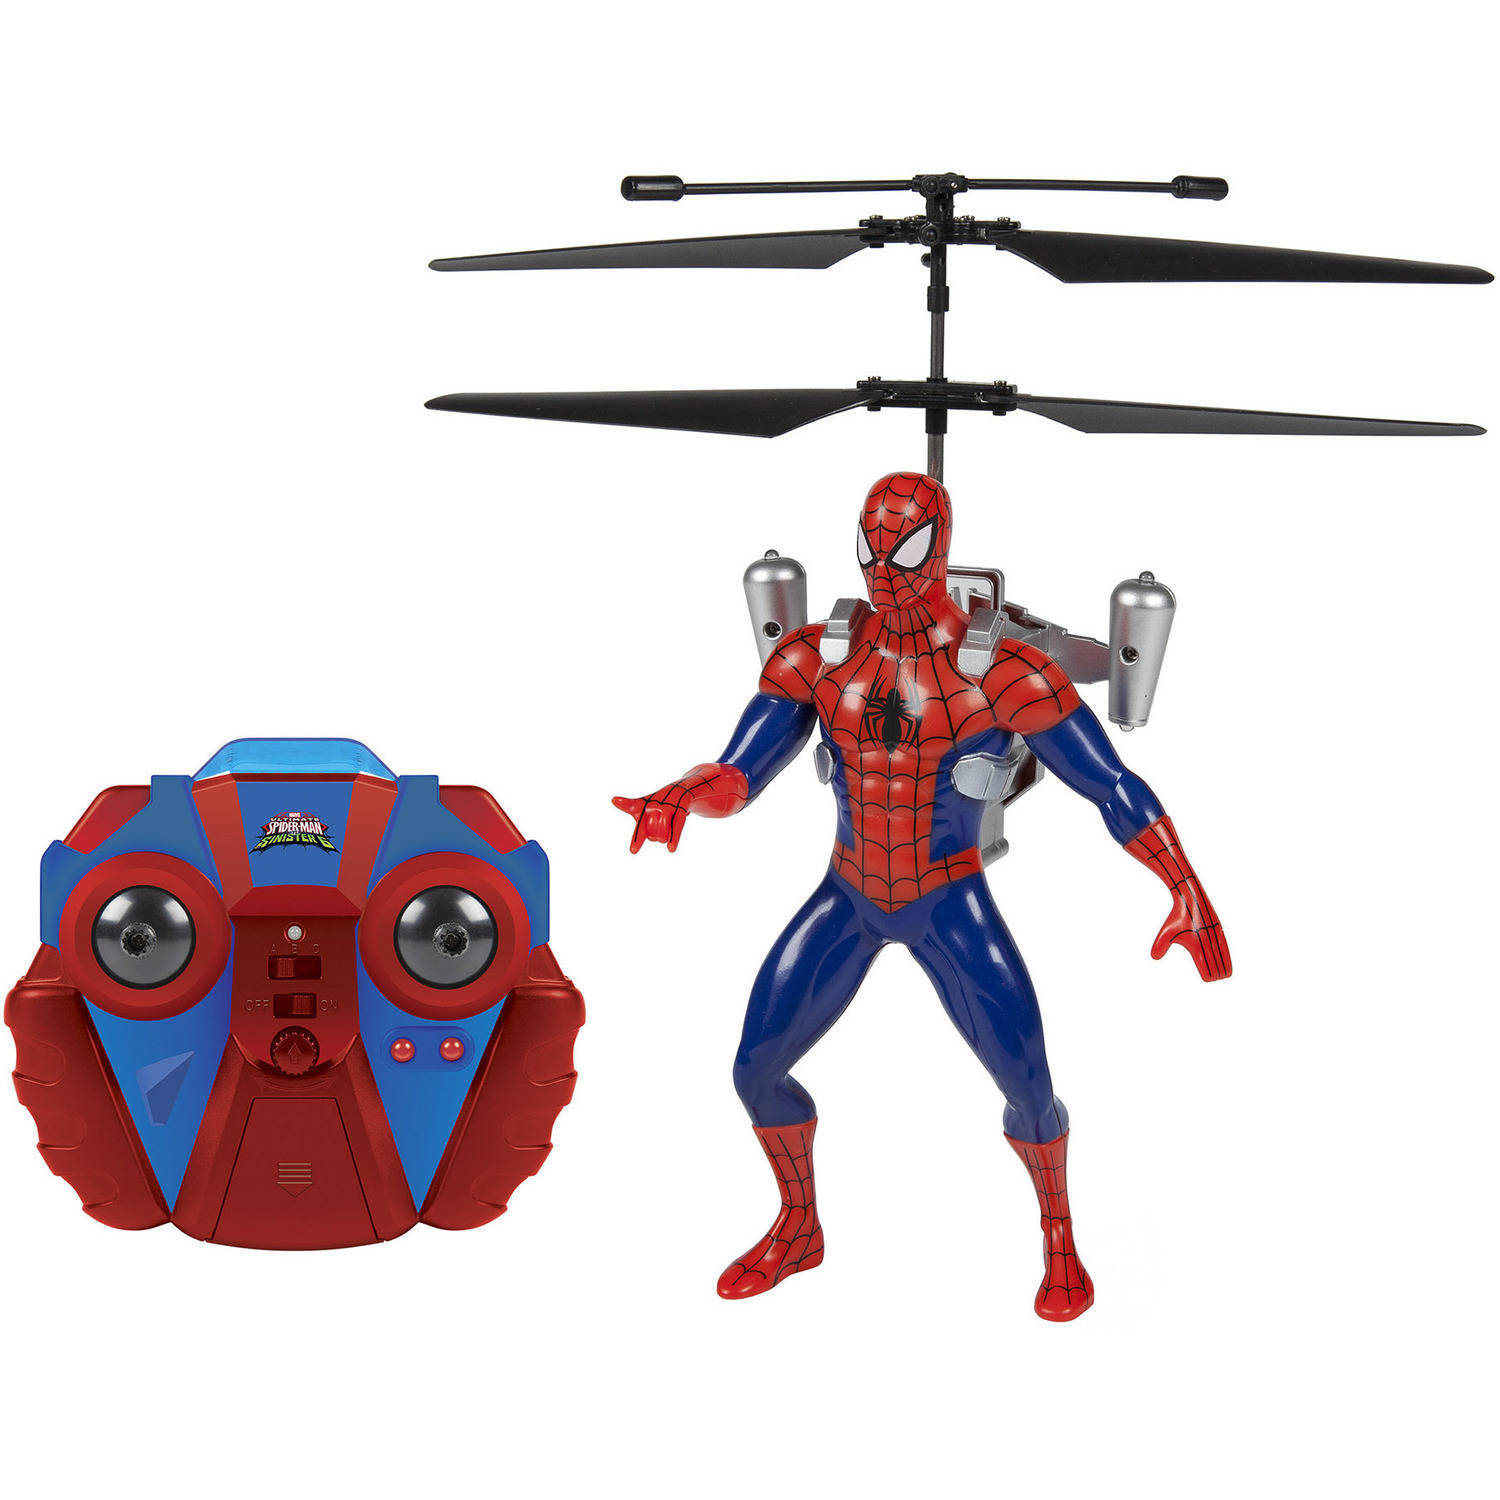 Marvel Ultimate Spider-Man Vs The Sinister 6 Jetpack 2-Channel IR RC Helicopter by MARVEL